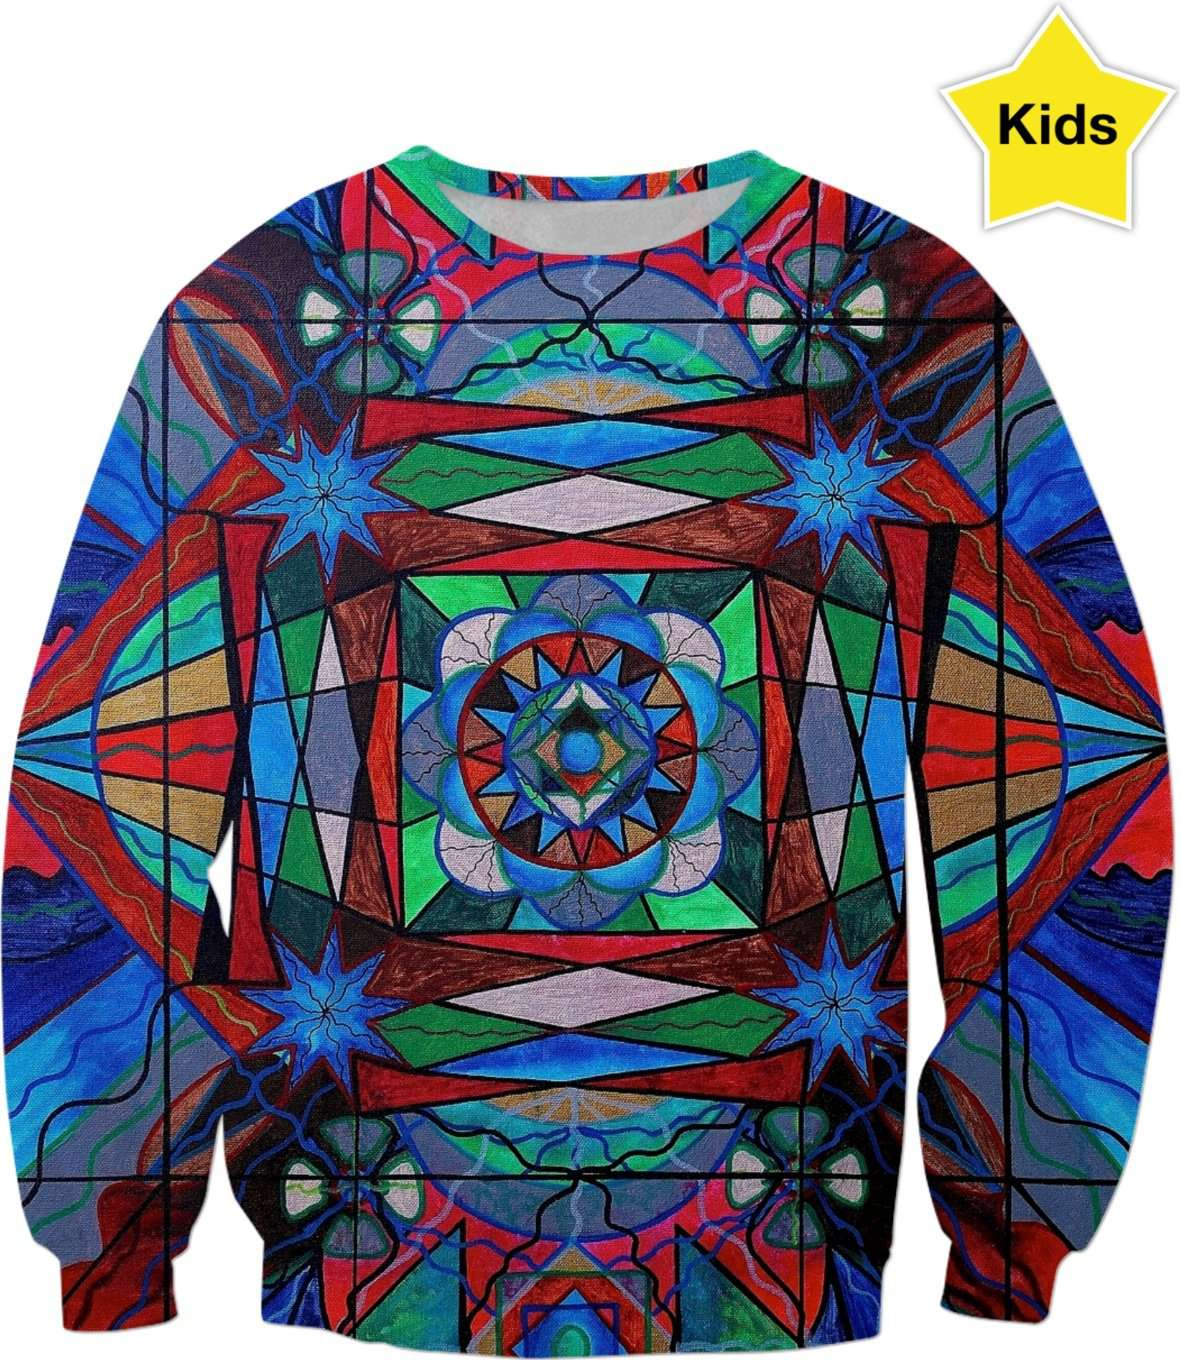 Sense of Security - Kids Sweatshirt